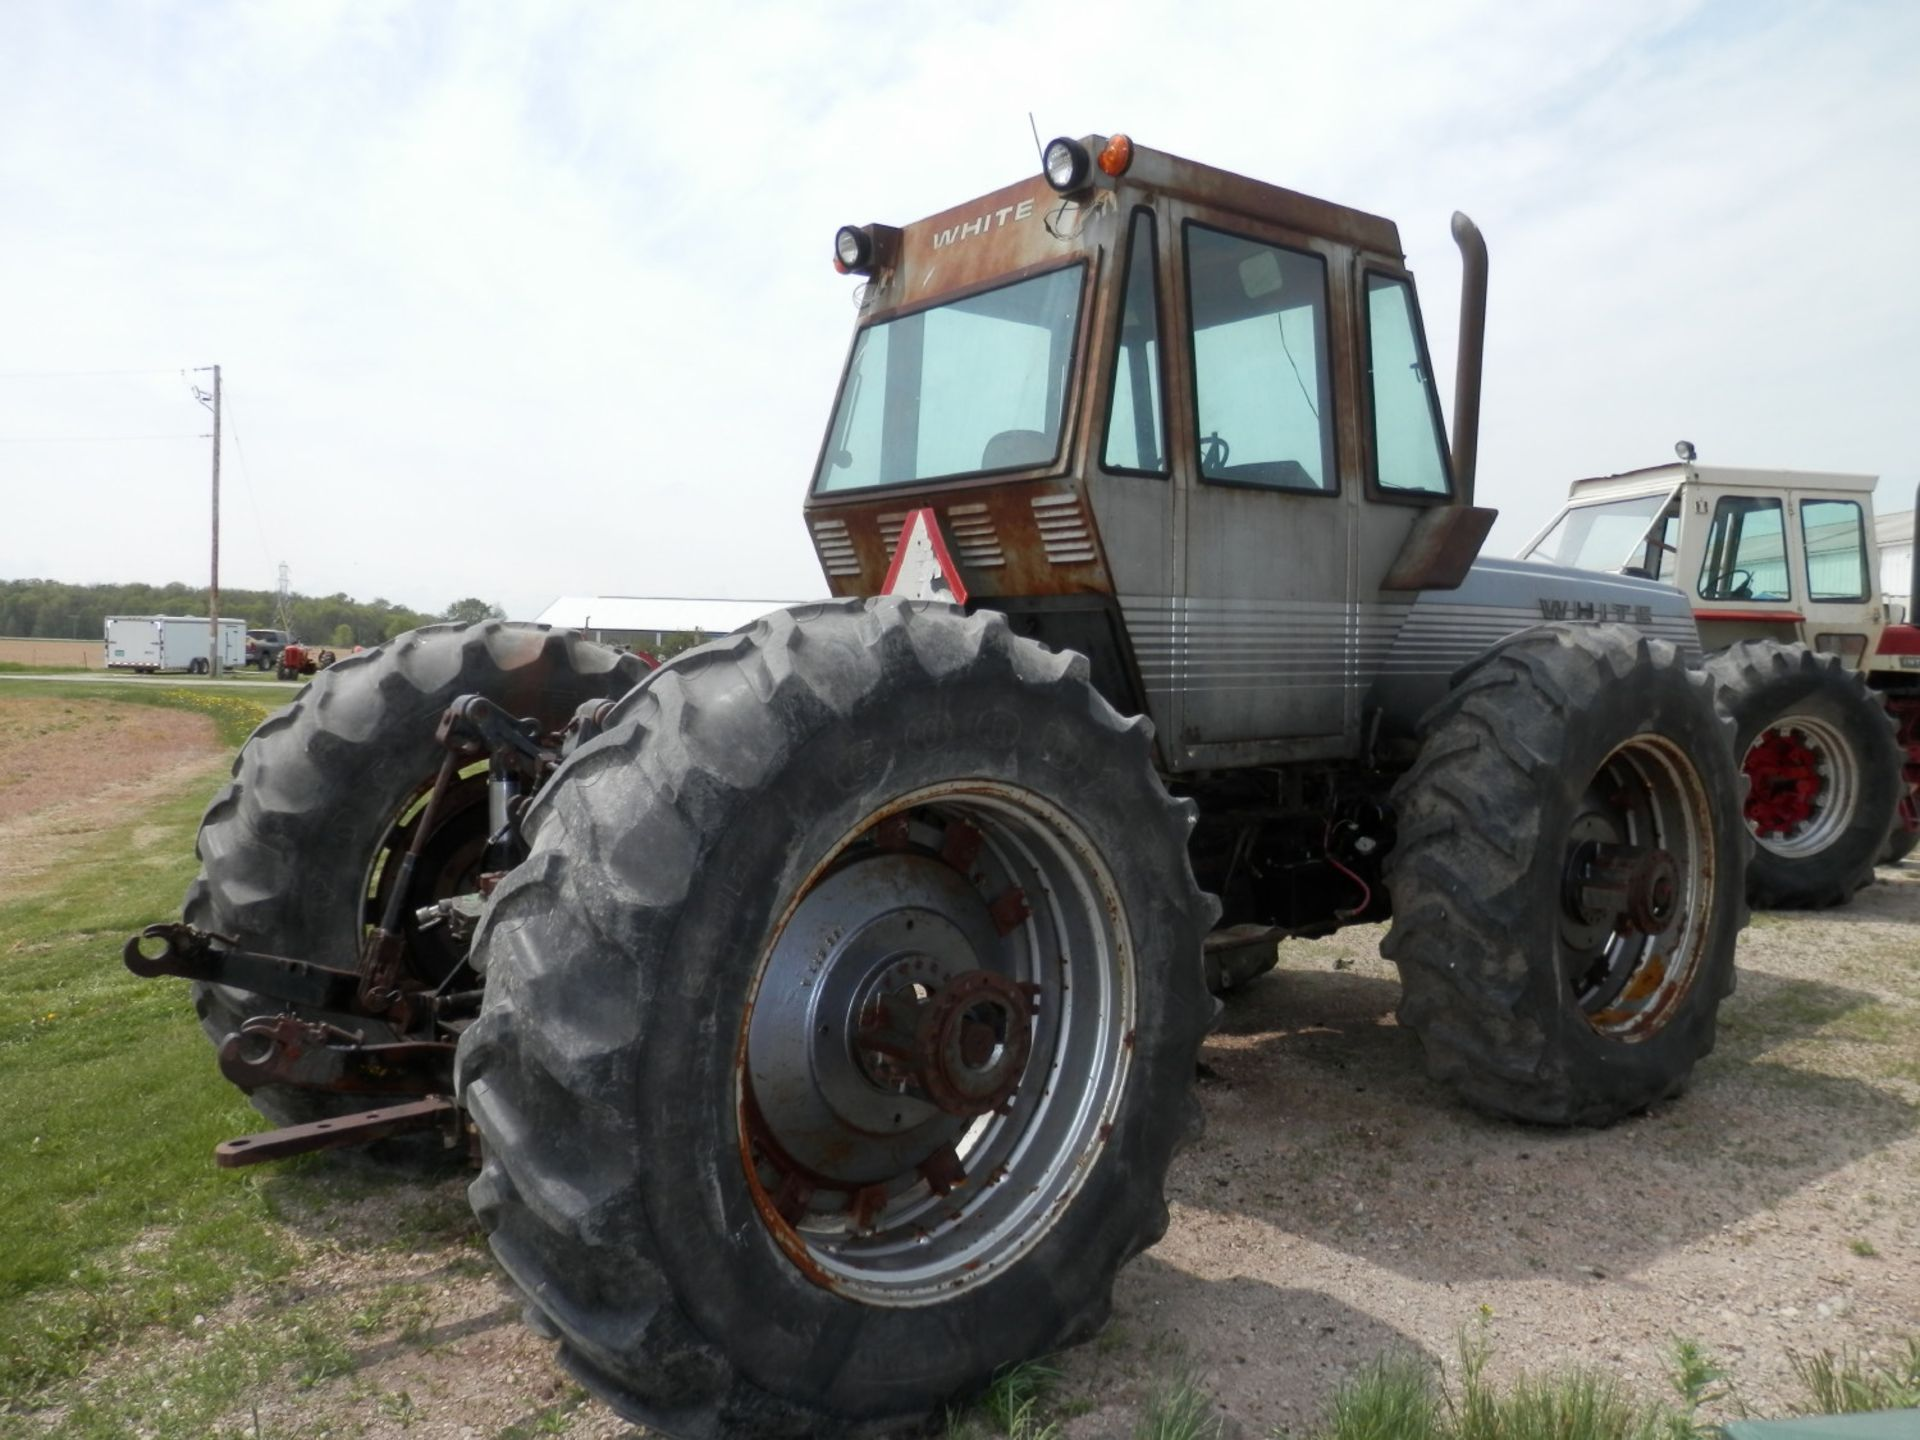 WHITE FIELD BOSS 4-150 4x4 TRACTOR - Image 5 of 8